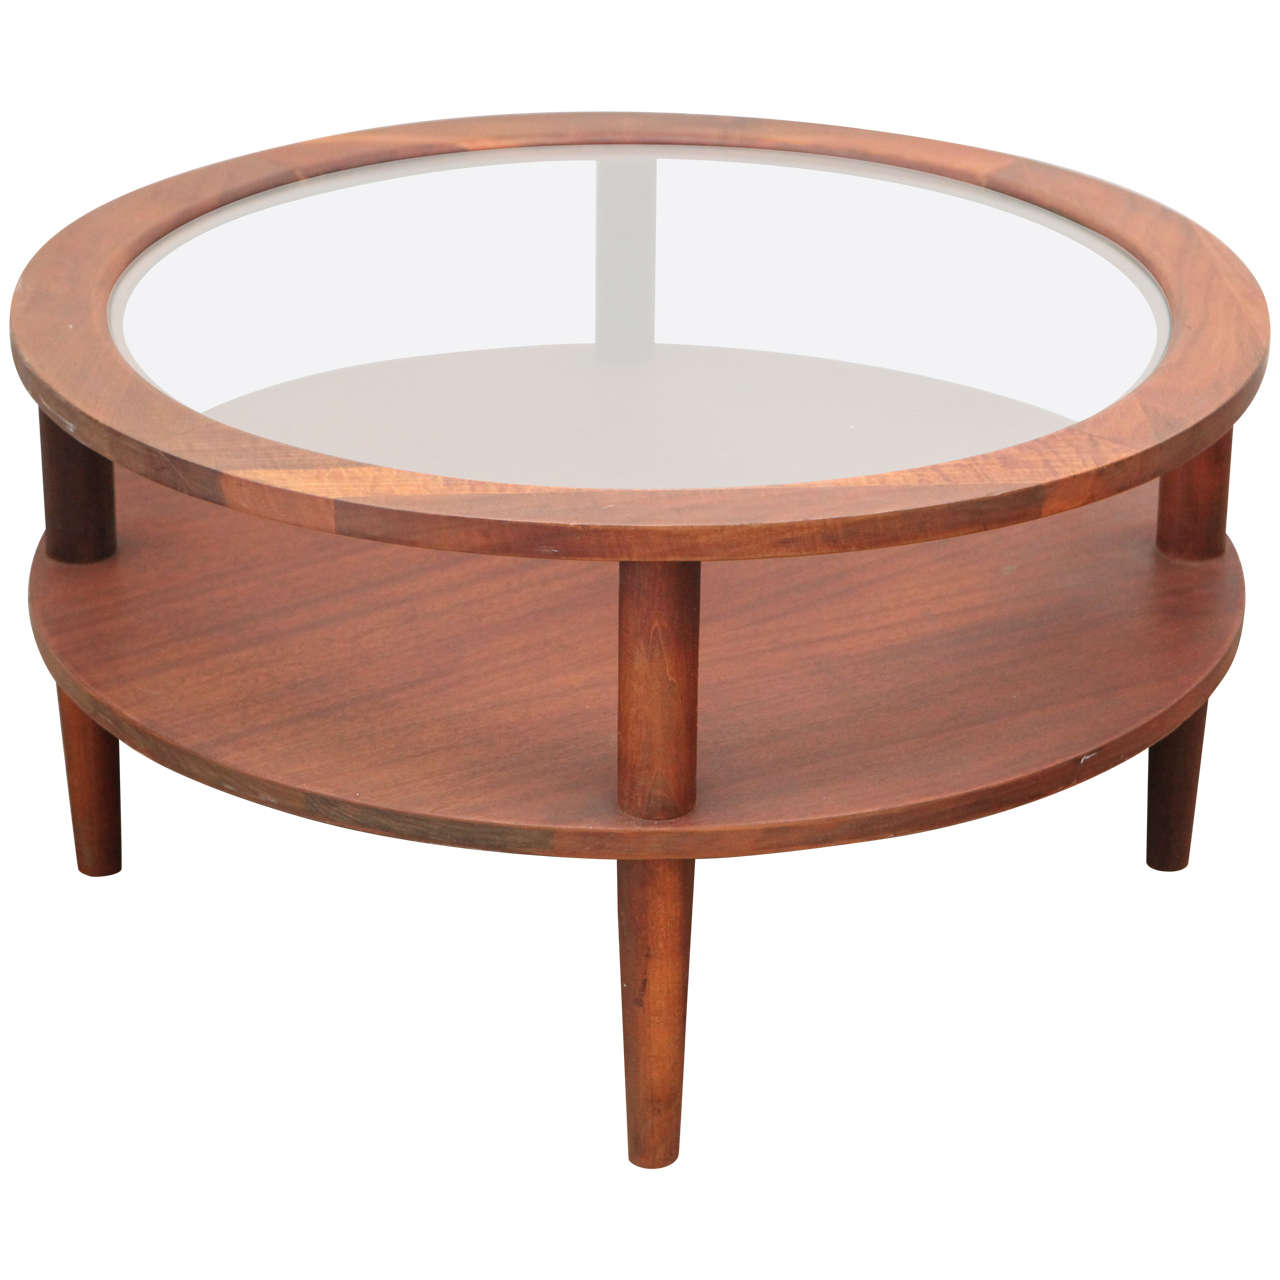 Vintage Round Gl Topped Coffee Table 1